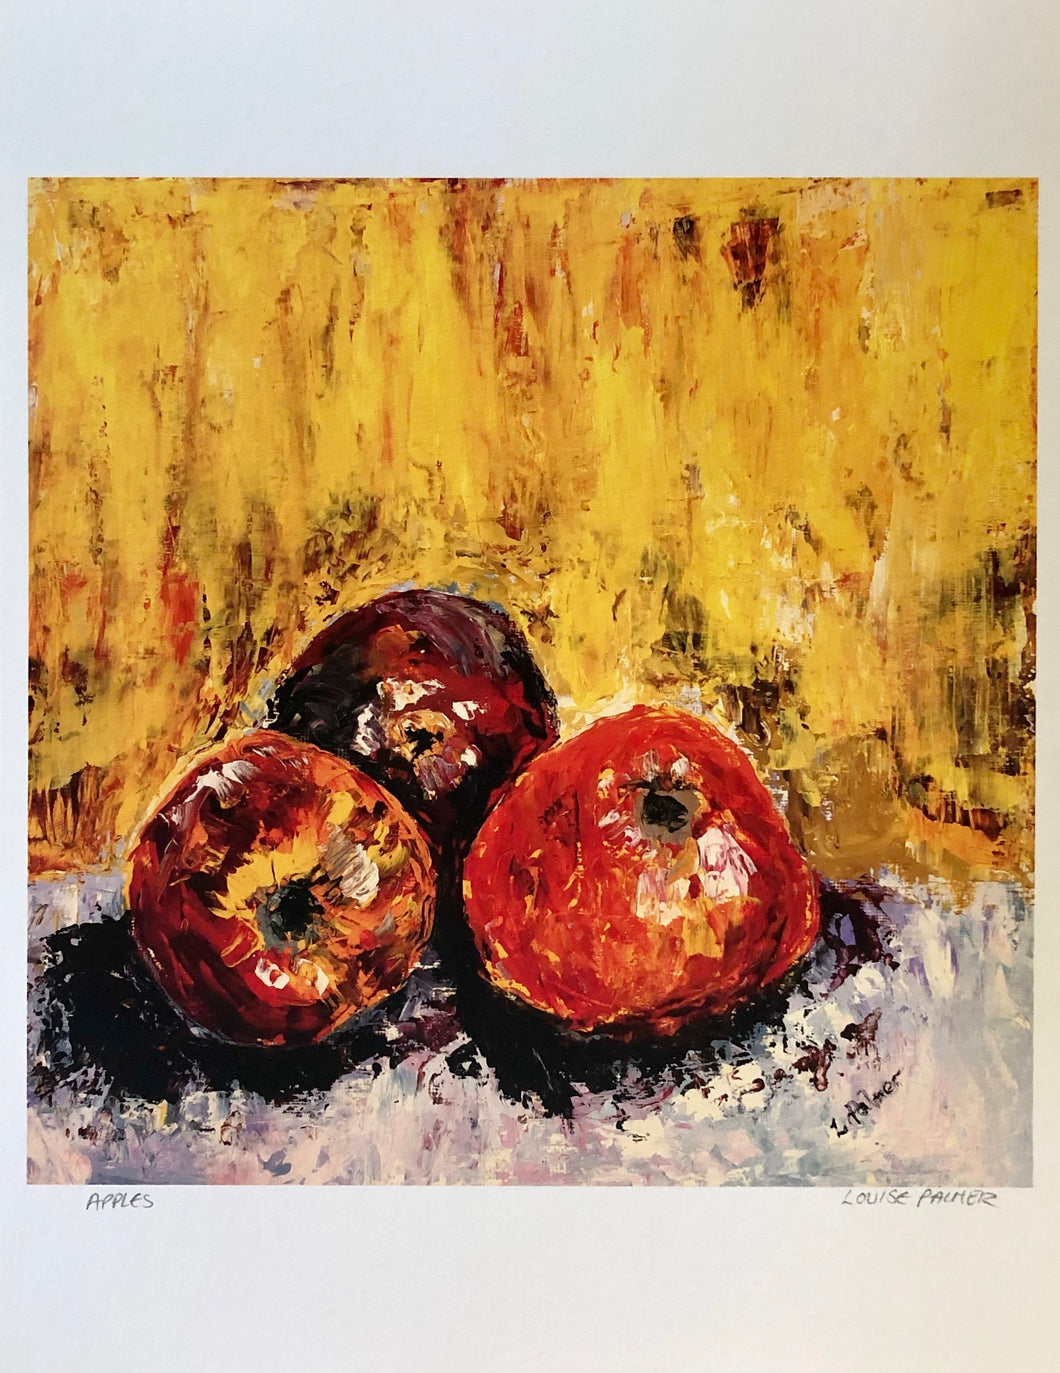 apples-oil -painting -fineart-print